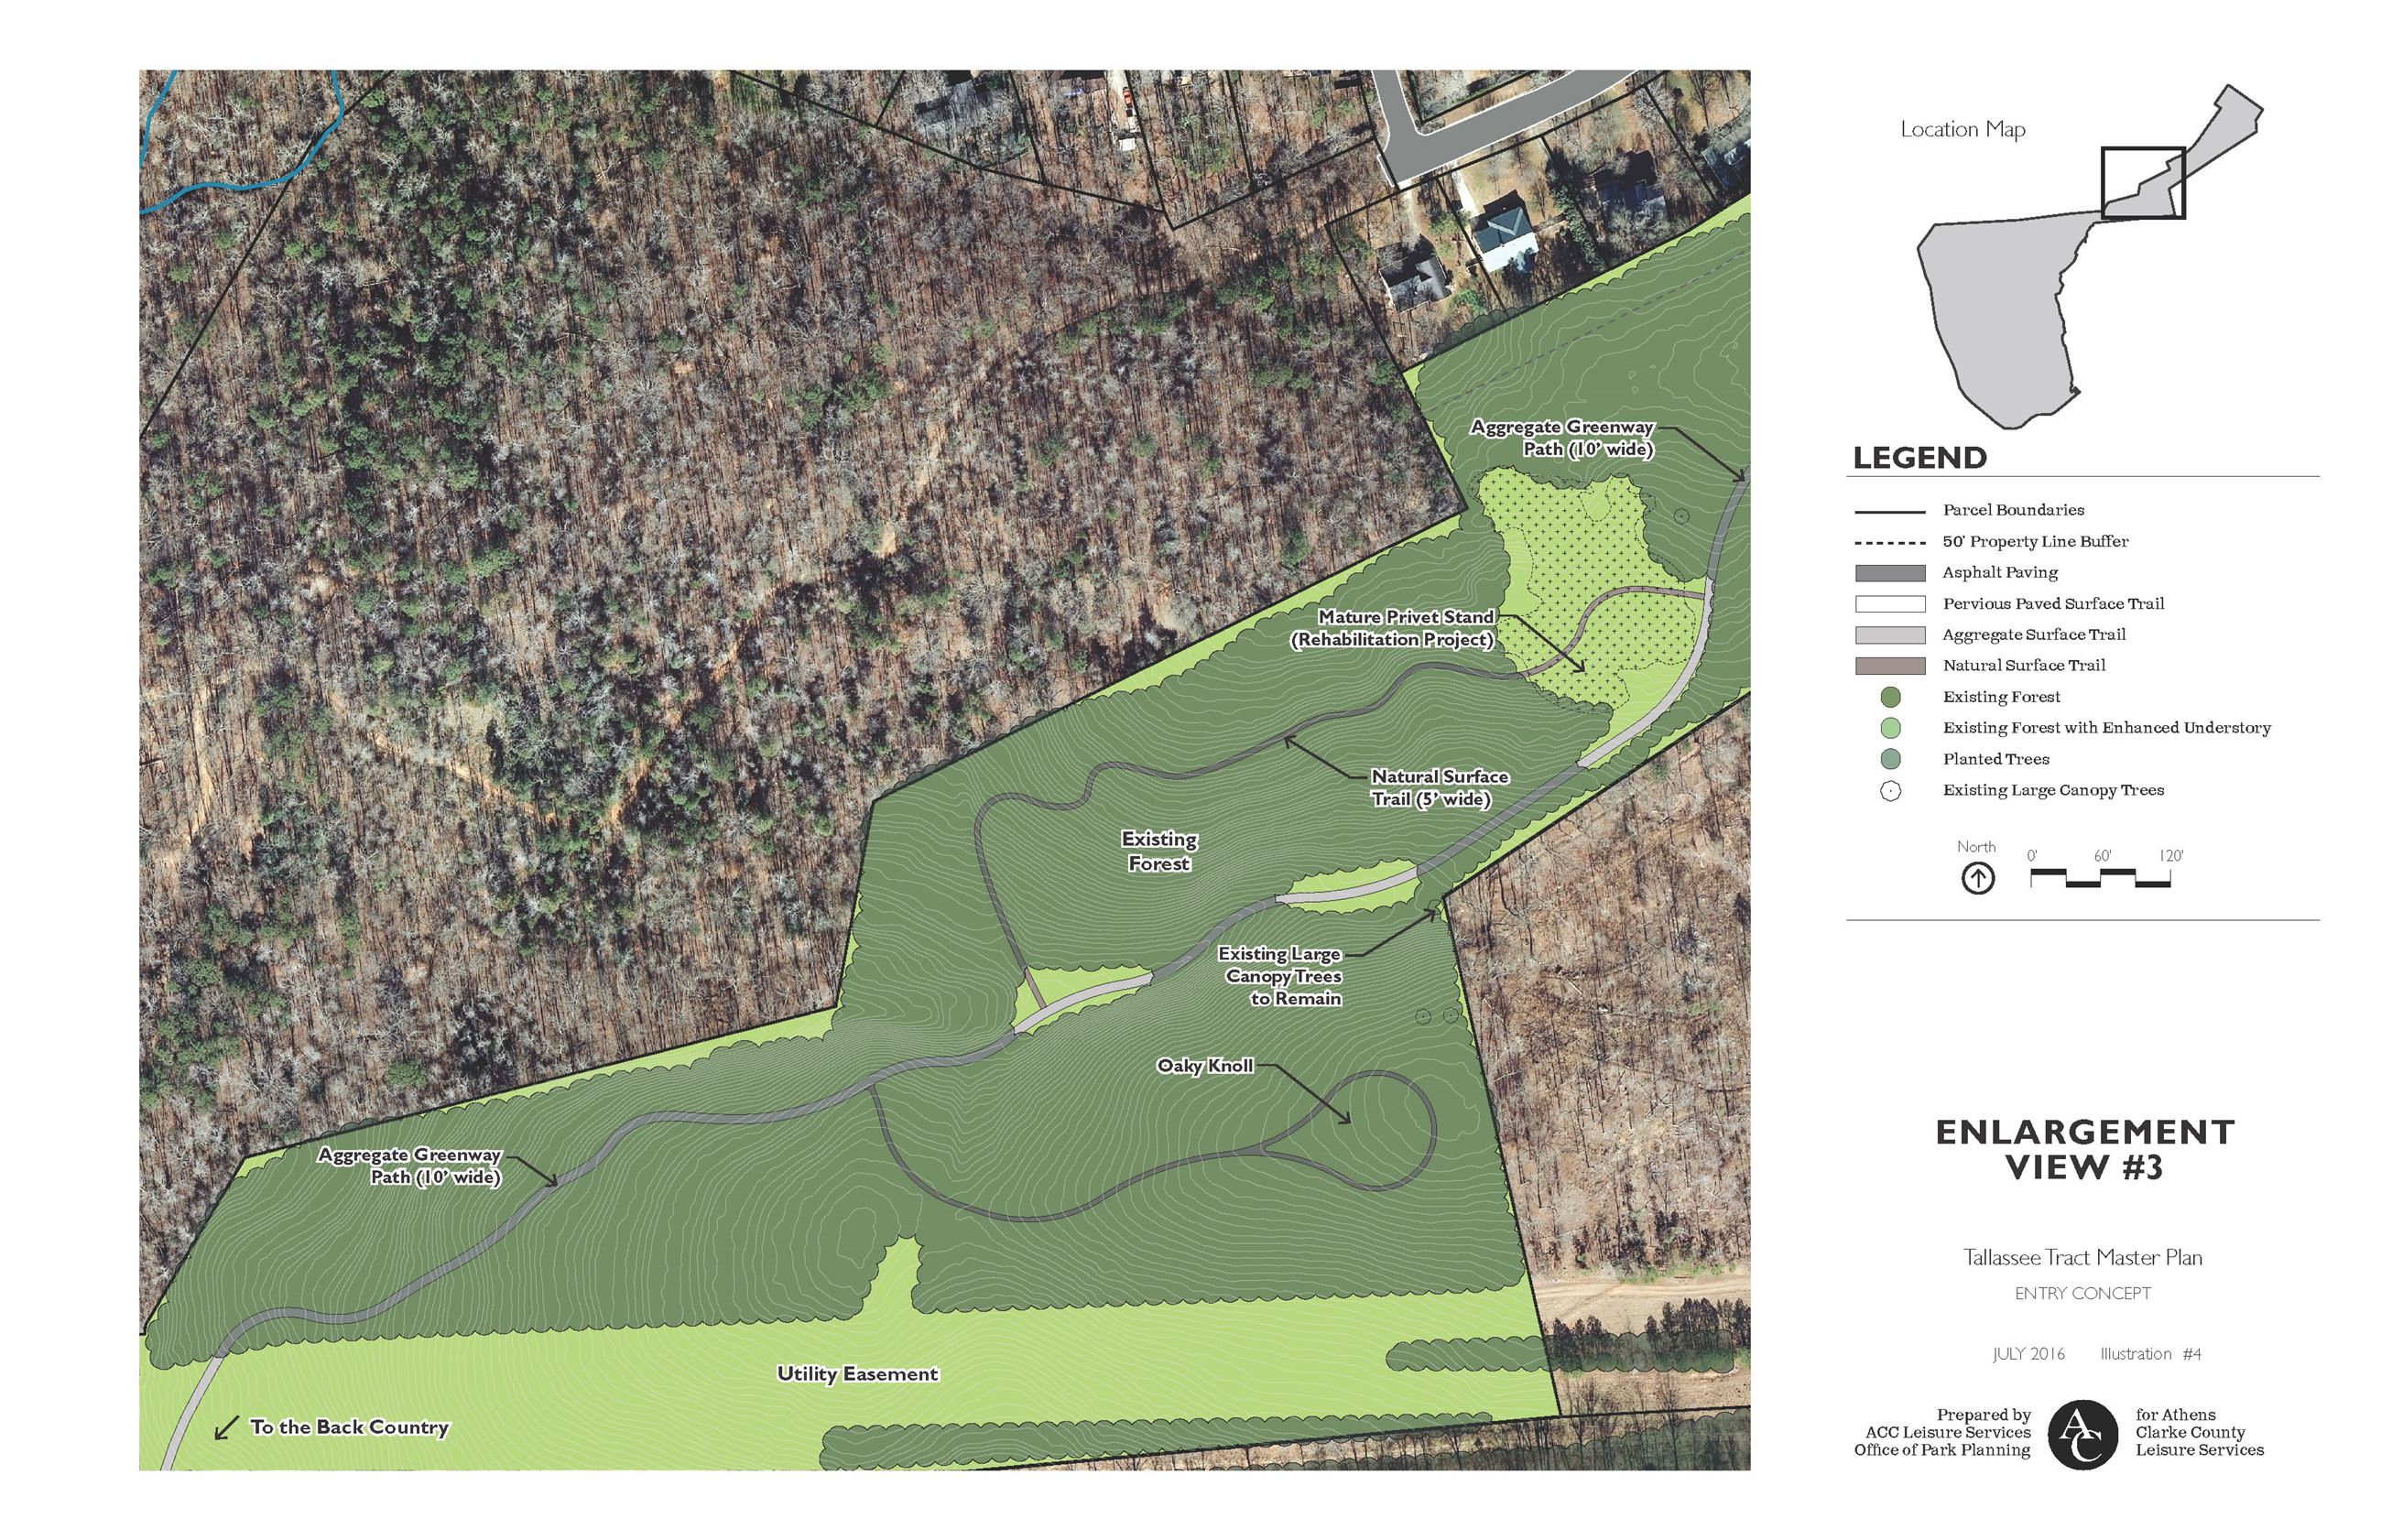 Tallassee Forest Master Plan Enlargement 3